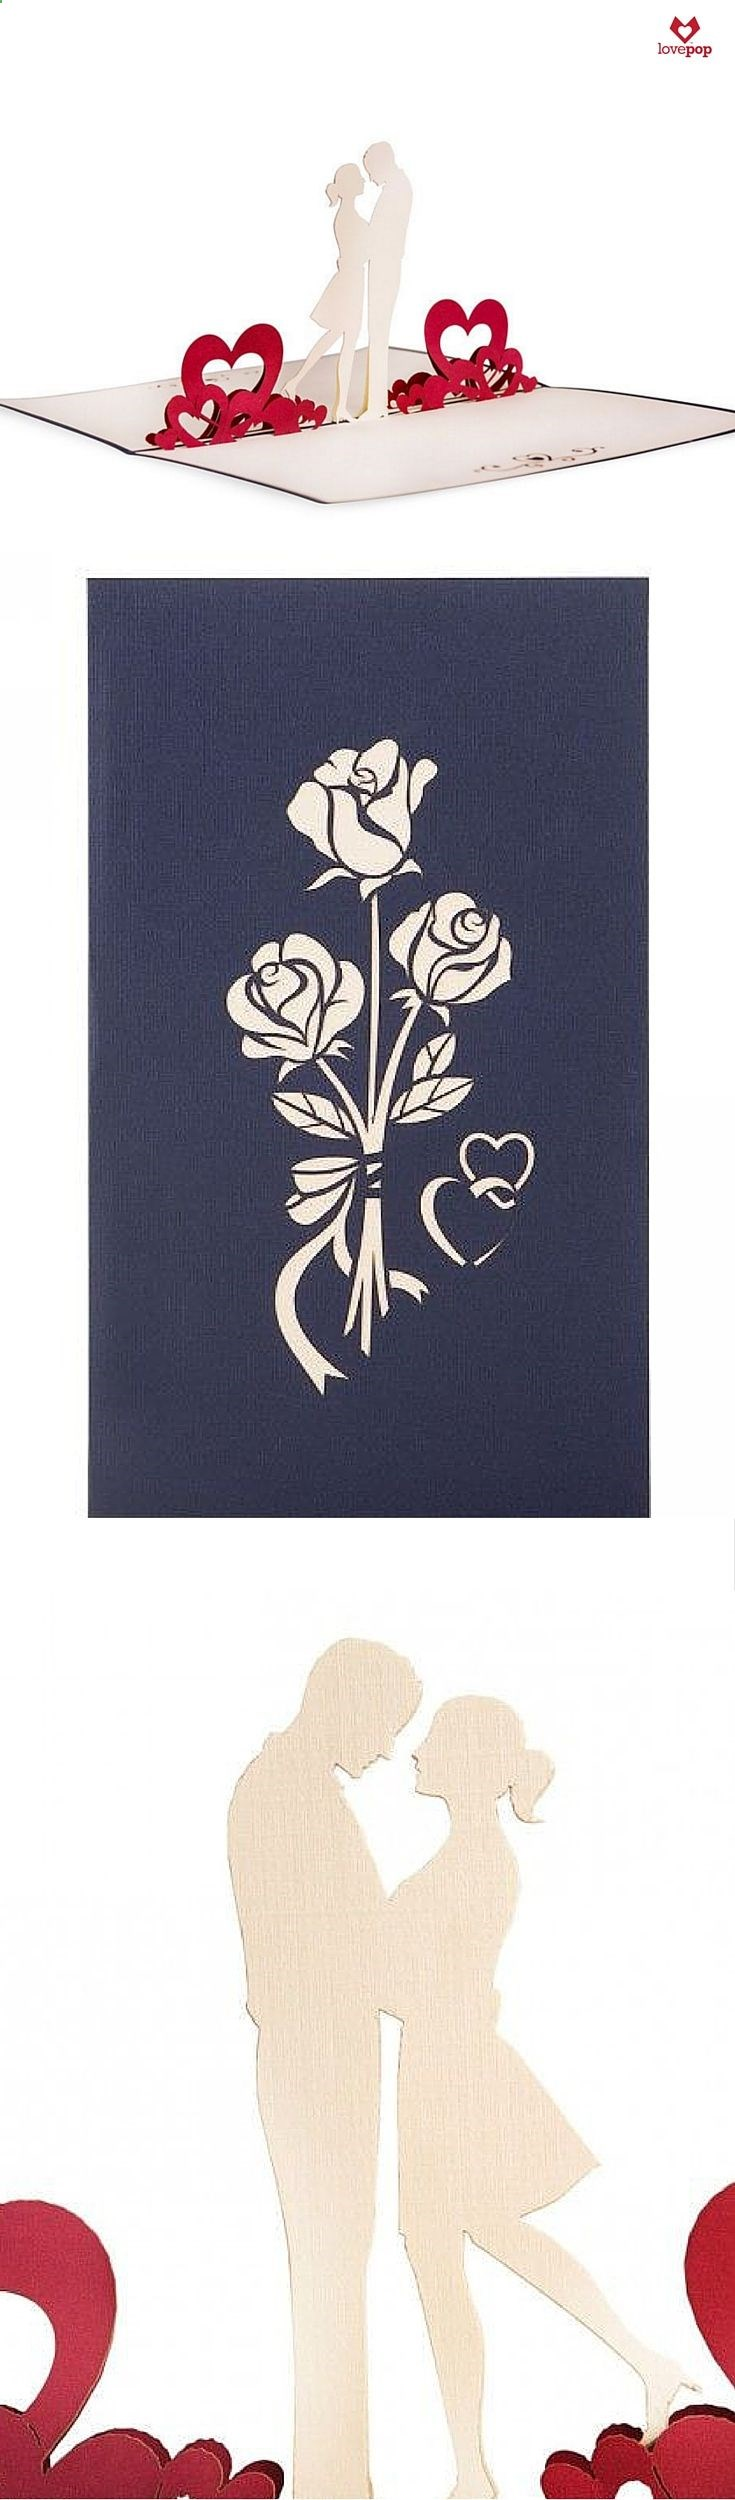 Surprise your love with a paper art pop up card of a couple in love